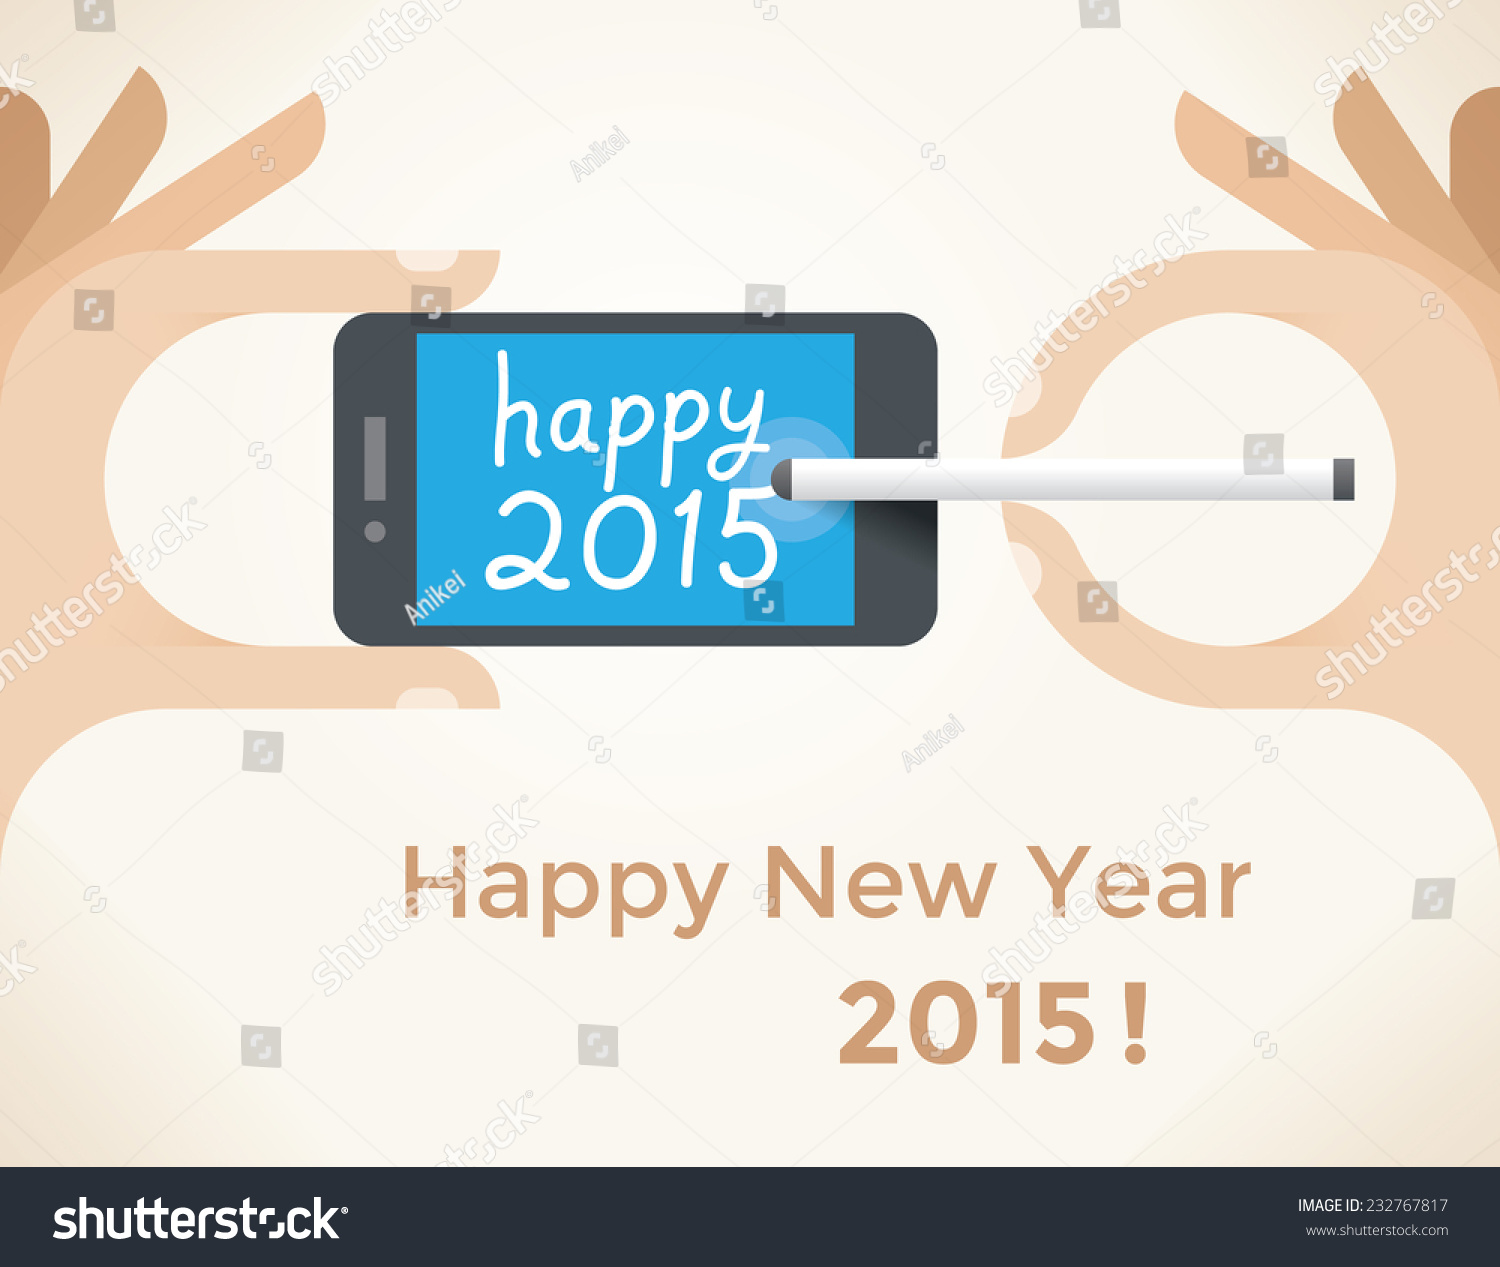 write a happy new year message